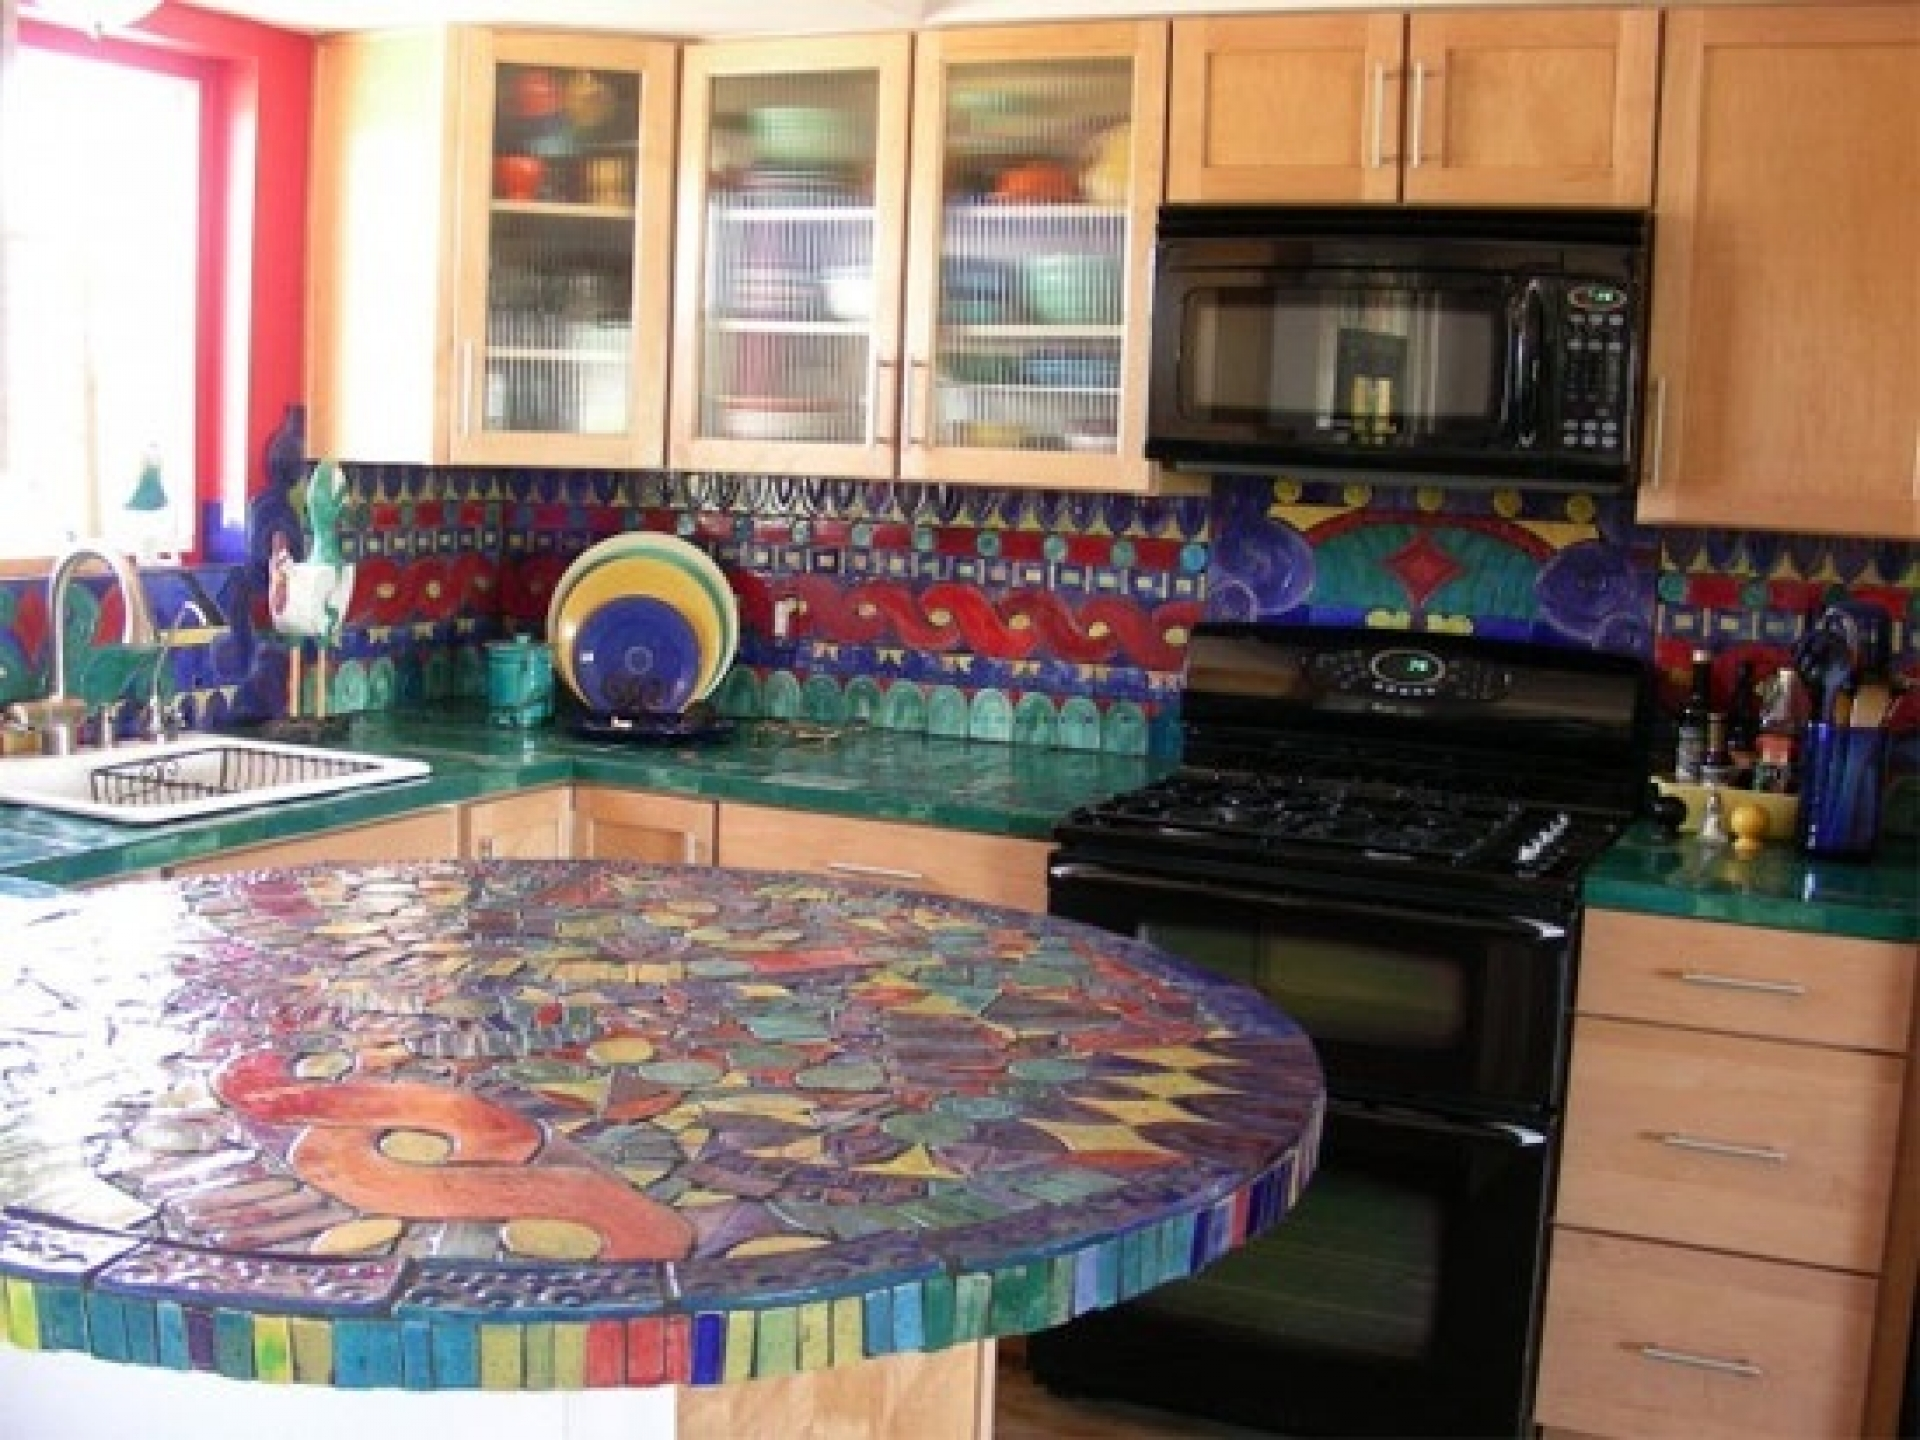 the types of tiles on mosaic ideas for kitchen glass kitchen countertops Colourful Tiles On Mosaic Ideas For Kitchen Image 3 of 10